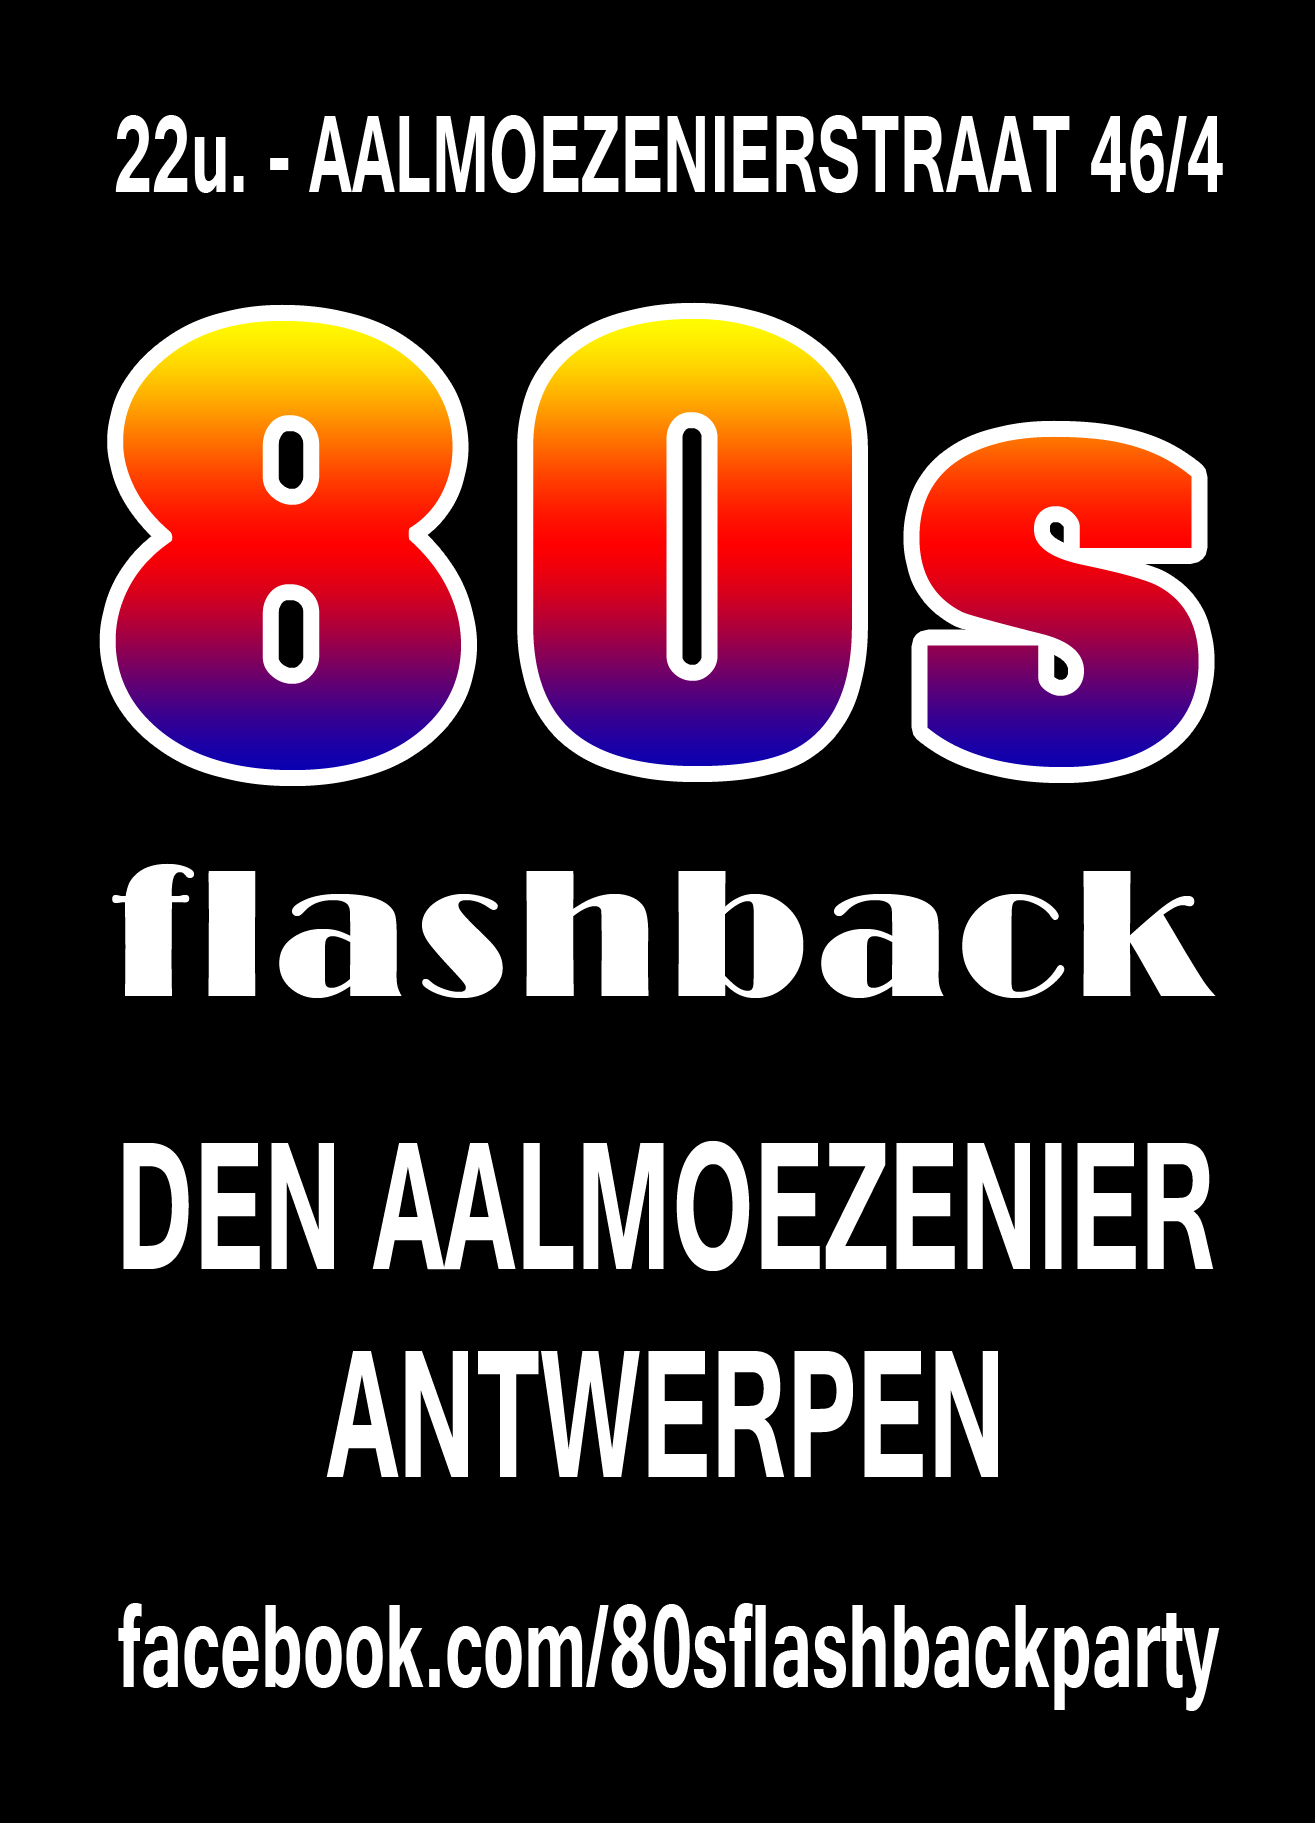 80s Flashback Party affiche op 20/04/2019